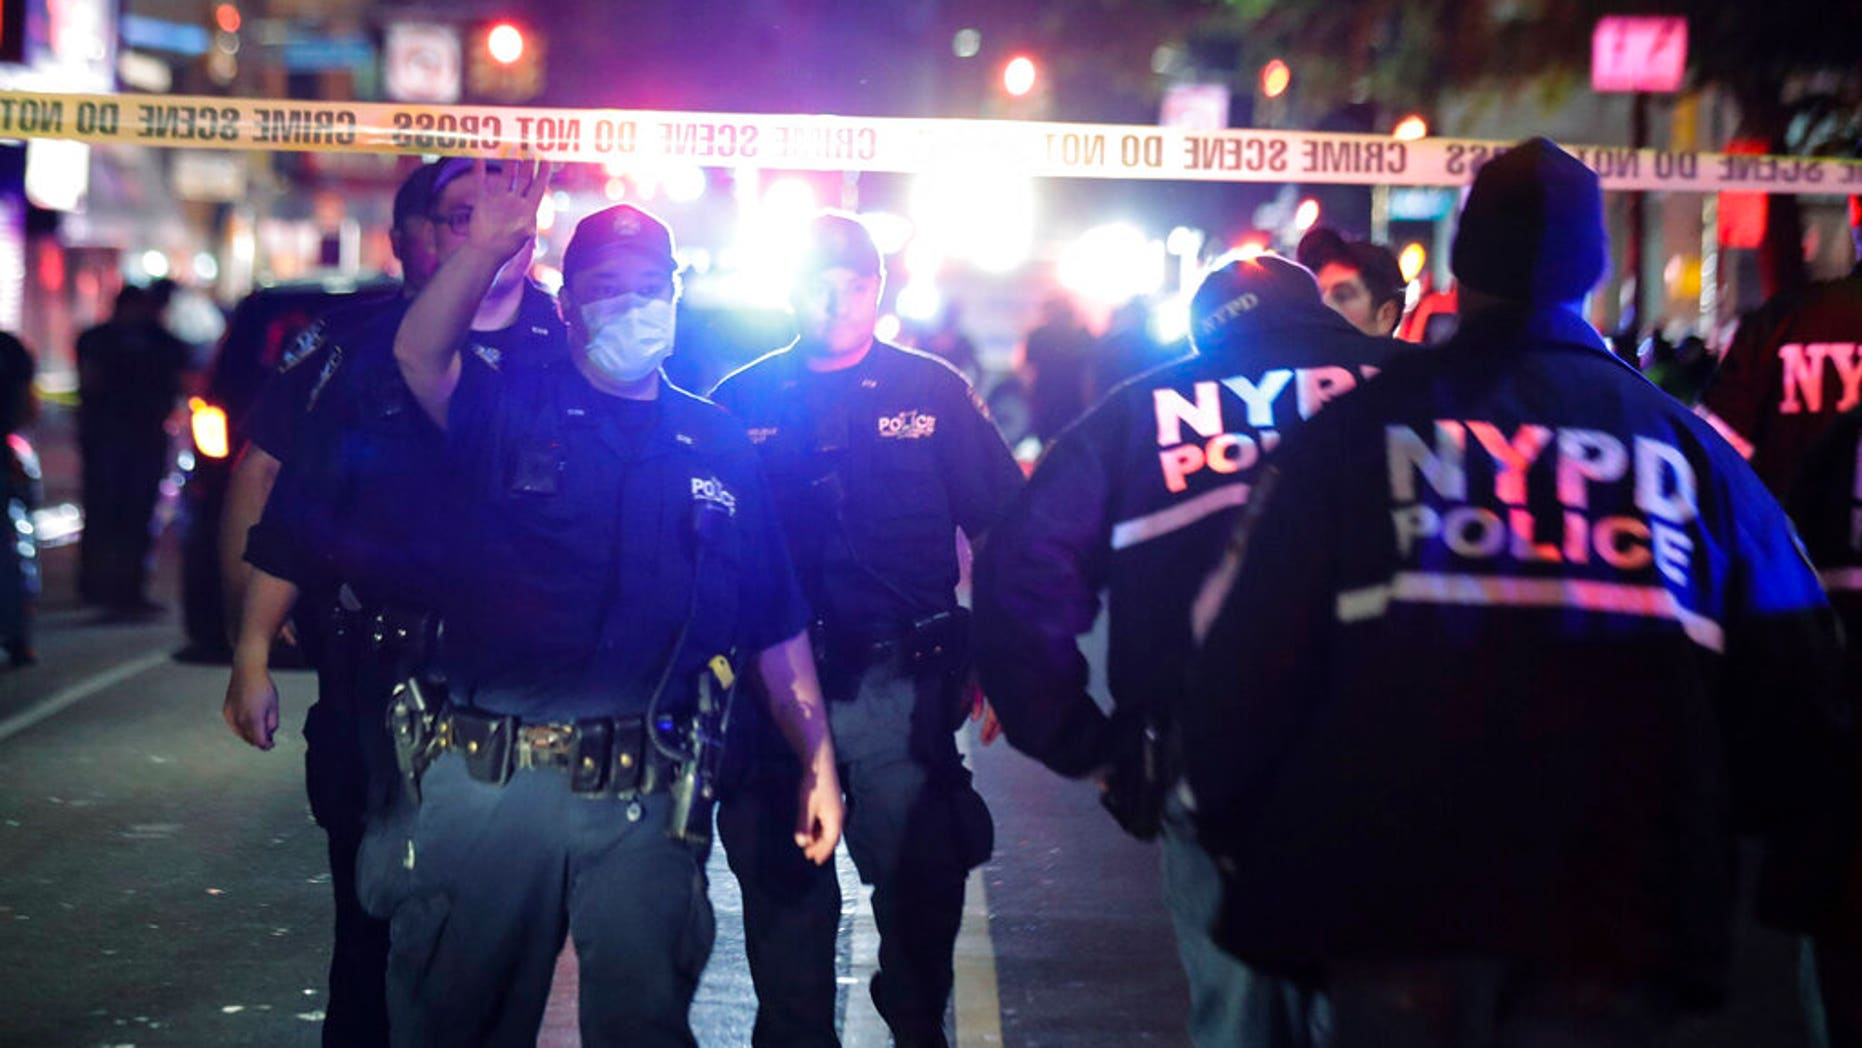 2 NYPD officers shot, another stabbed during post-curfew confrontation, unclear if related to Floyd protests 63